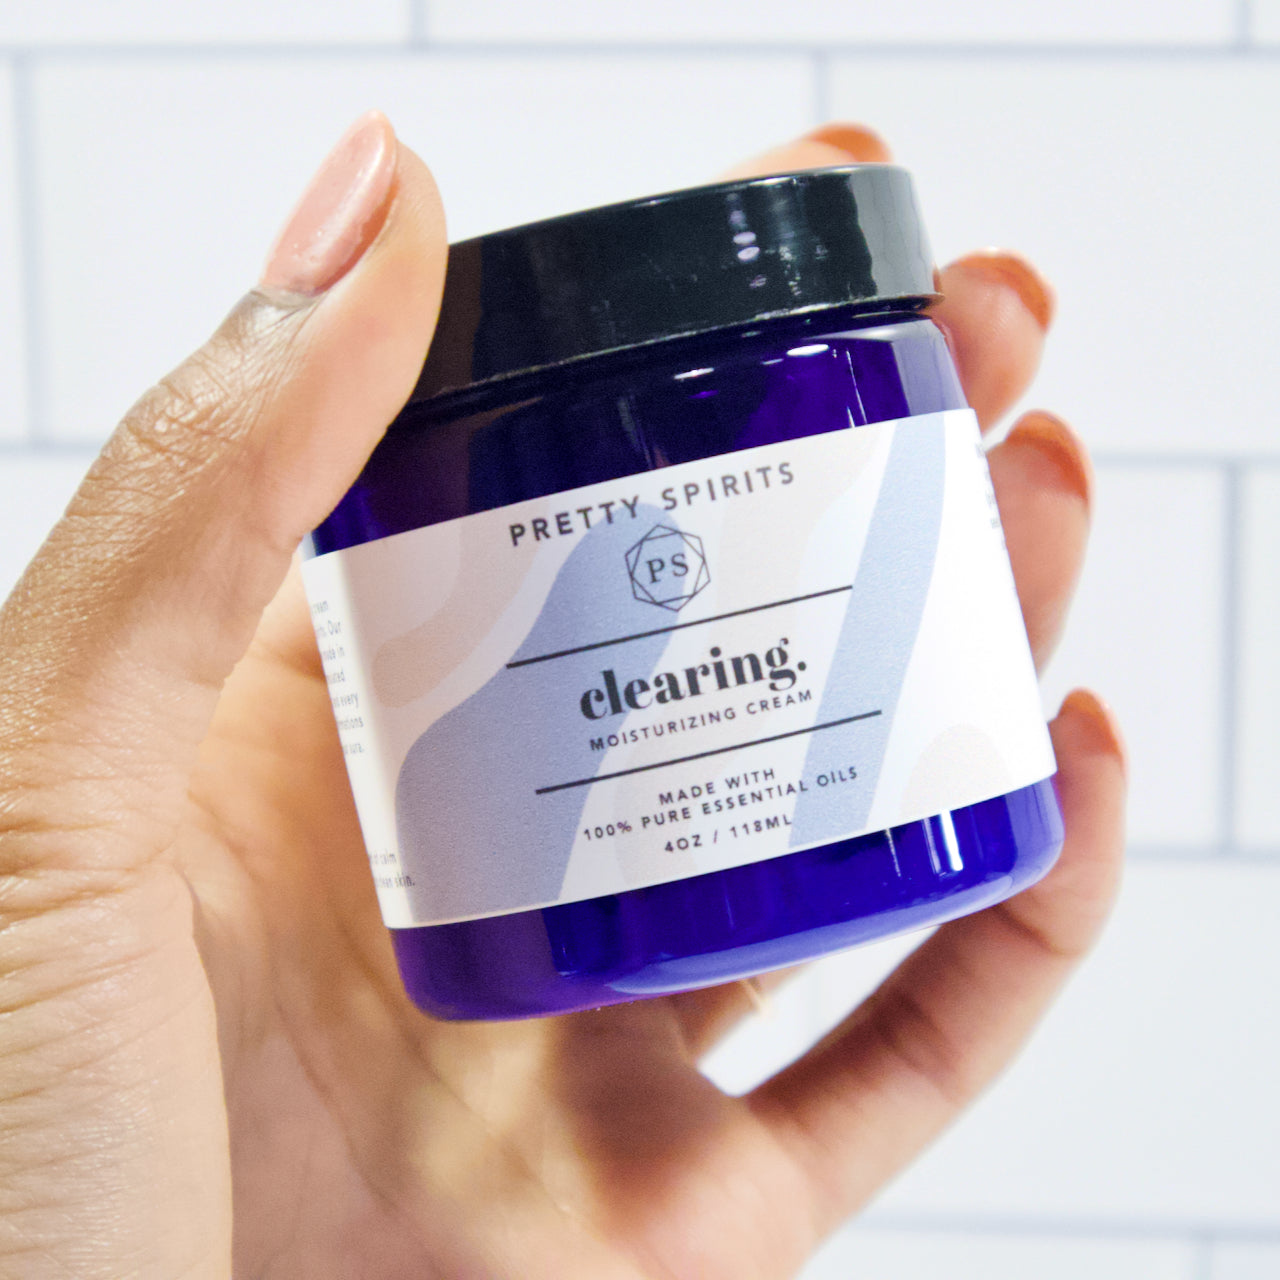 Clearing Moisturizing Body Cream